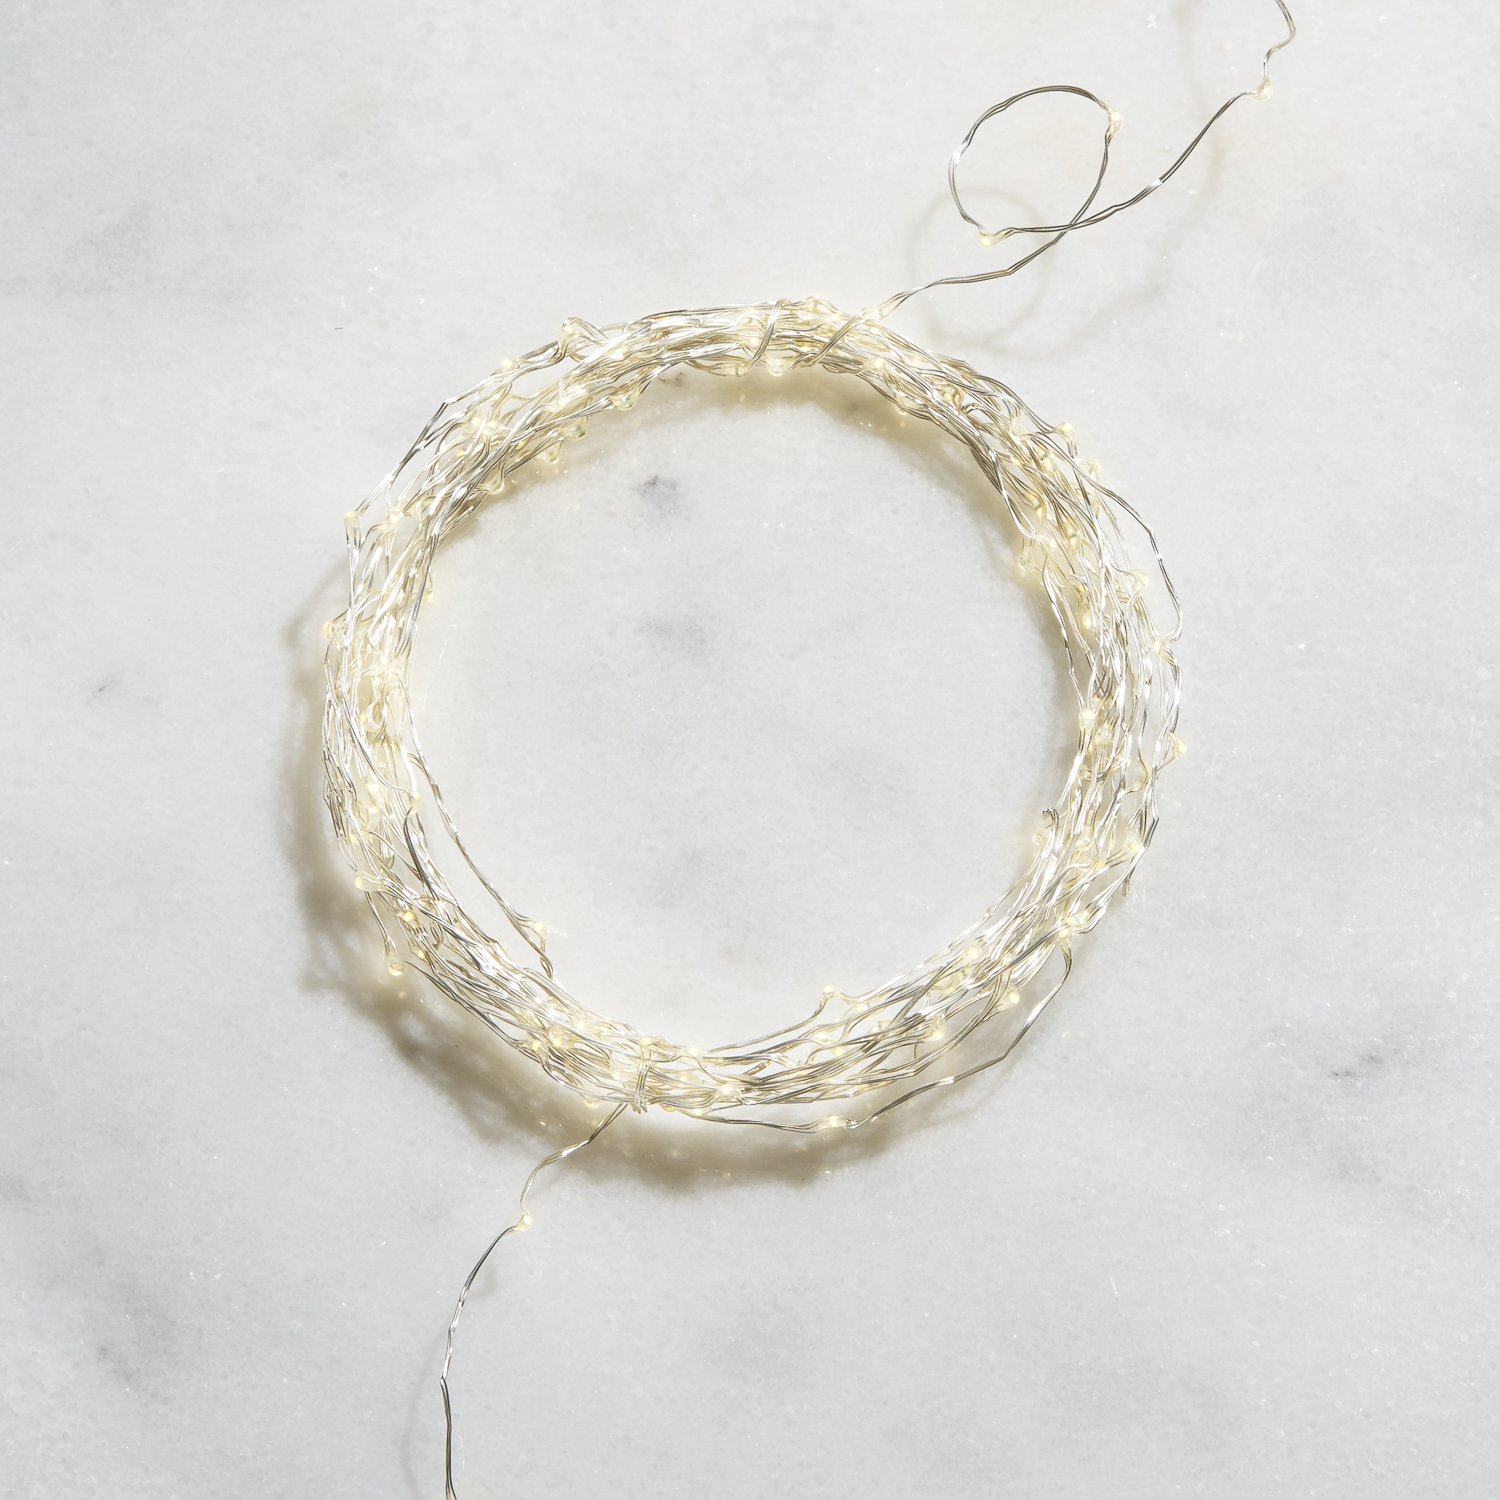 Starry Bright-White Silver Fairy String LIghts, 32ft